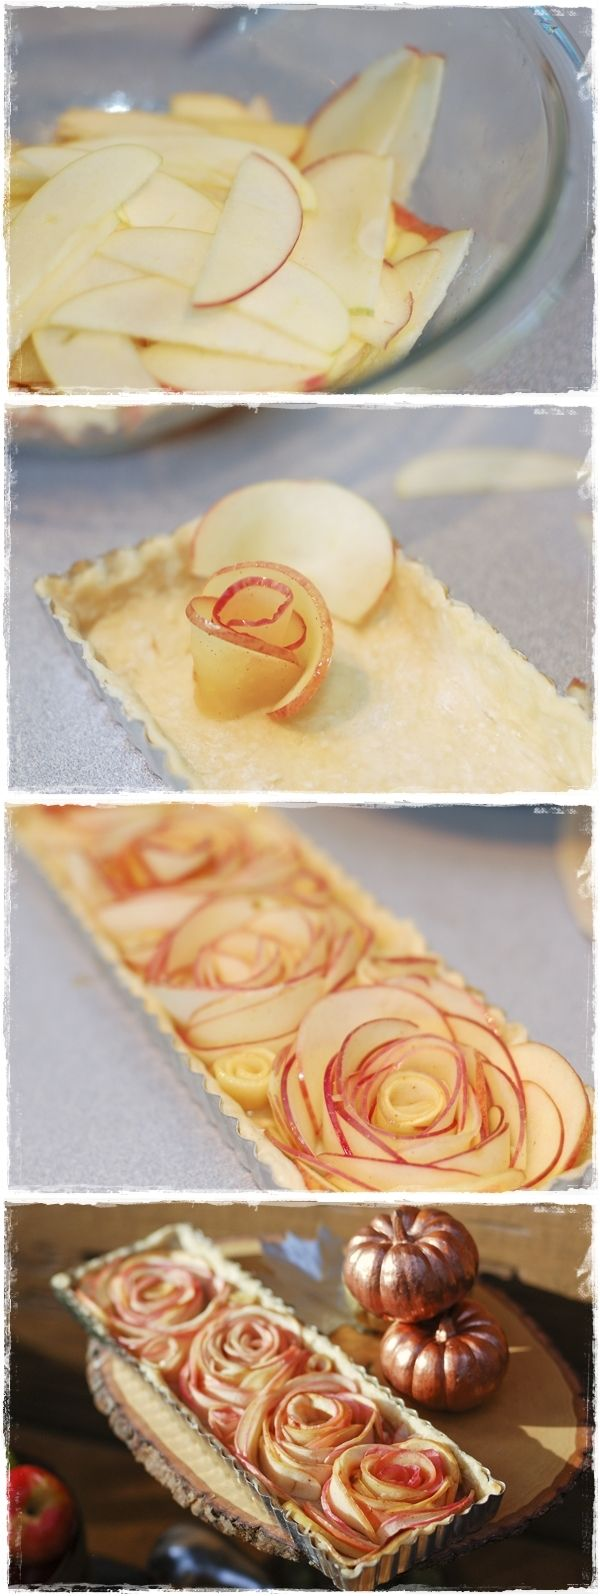 ROSE APPLE TART RECIPE baking recipe recipes ingredients instructions desert recipes easy recipes christmas recipes autumn recipes desert recipe